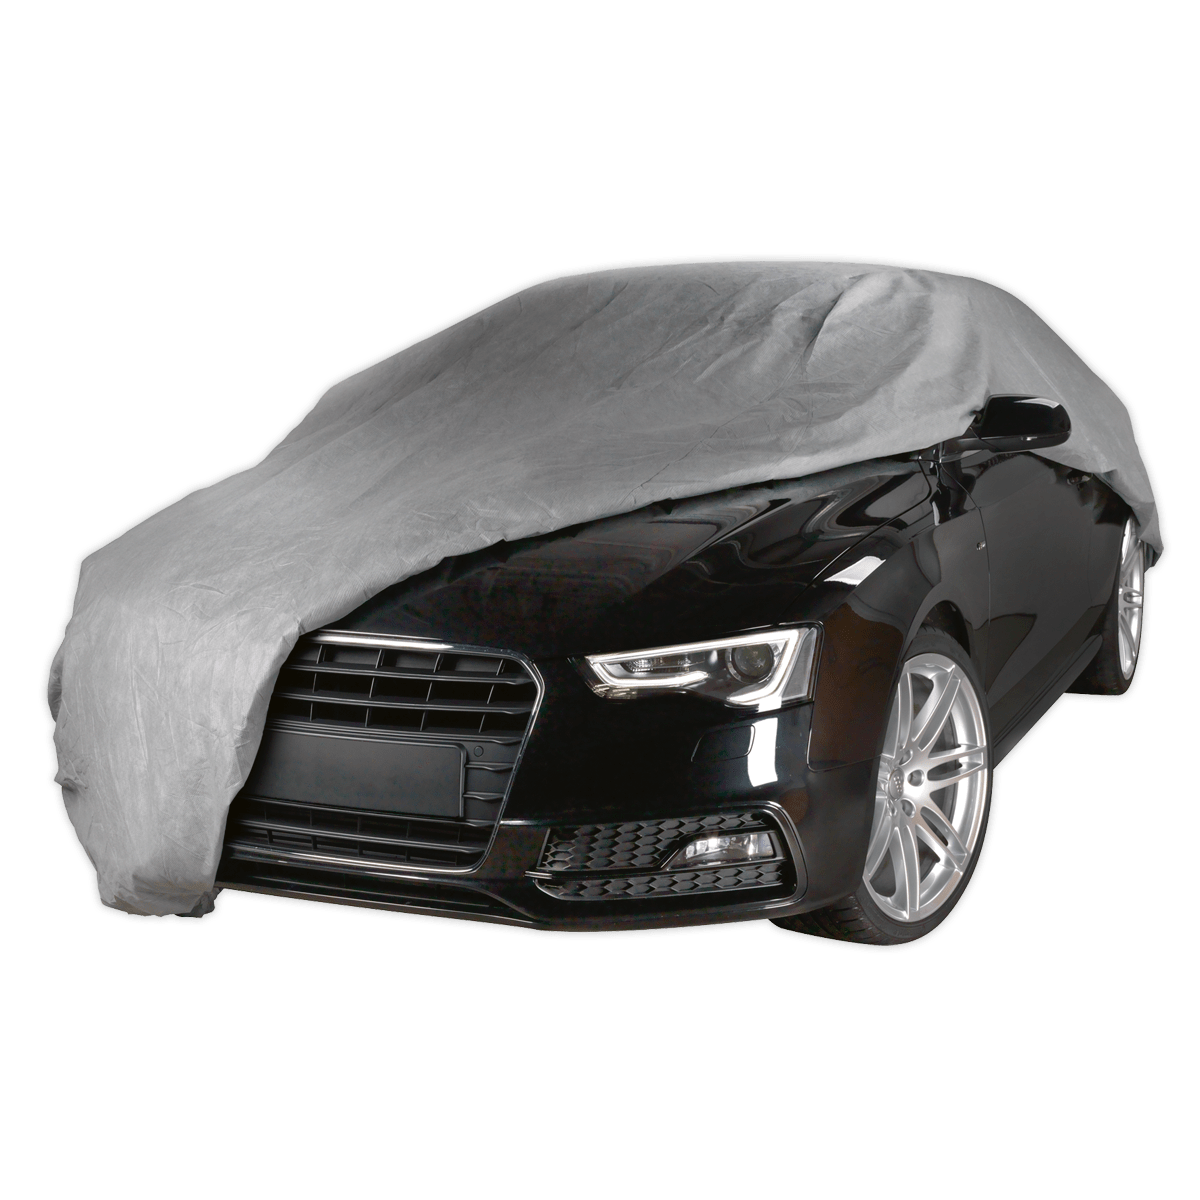 Sealey All Seasons Car Cover 3-Layer - Extra-Large SCCXL